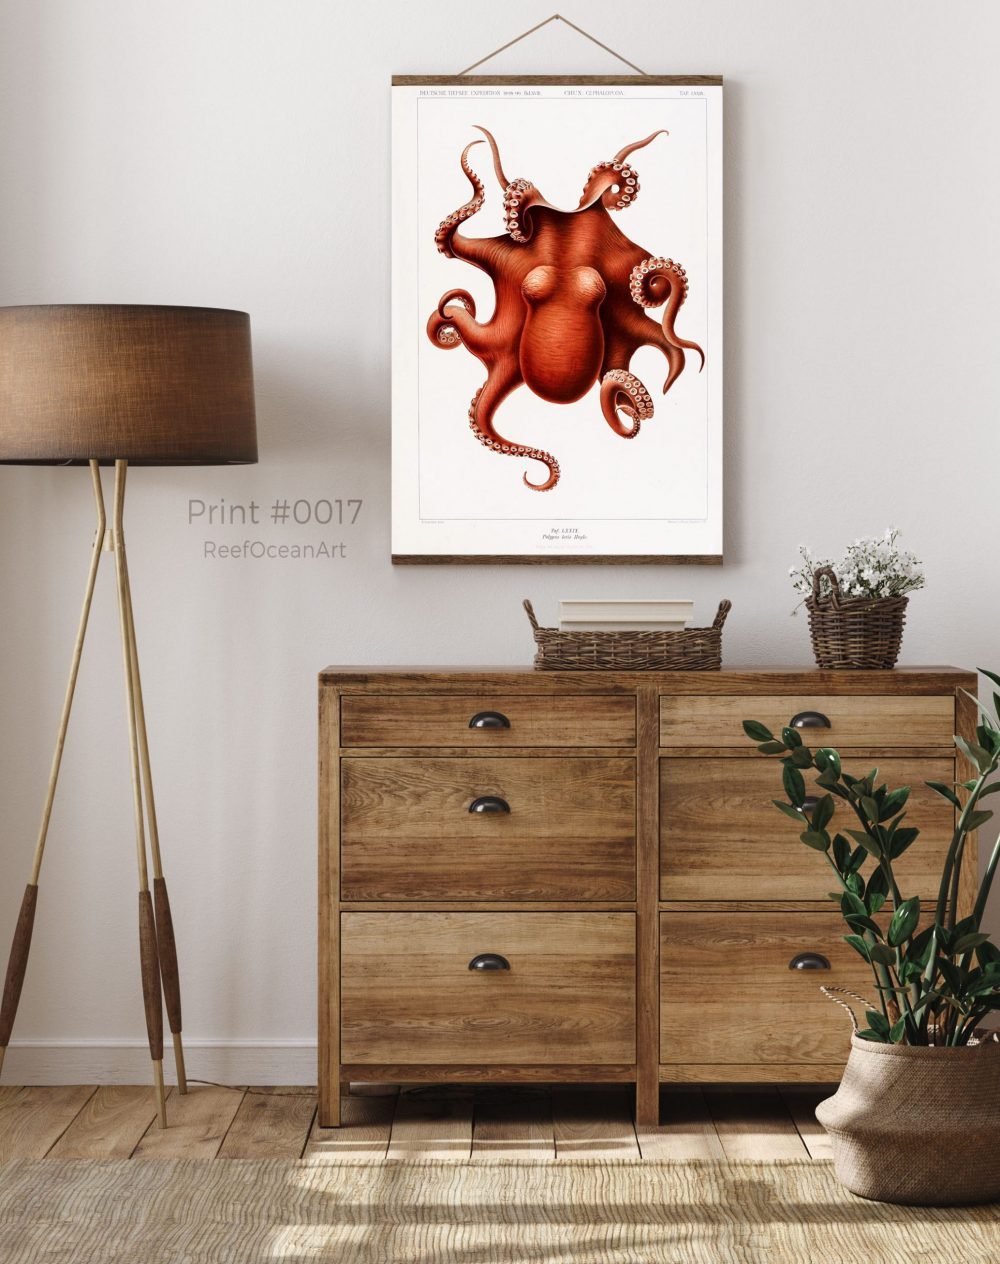 The Cephalopods, Vintage Giant Octopus, #0017